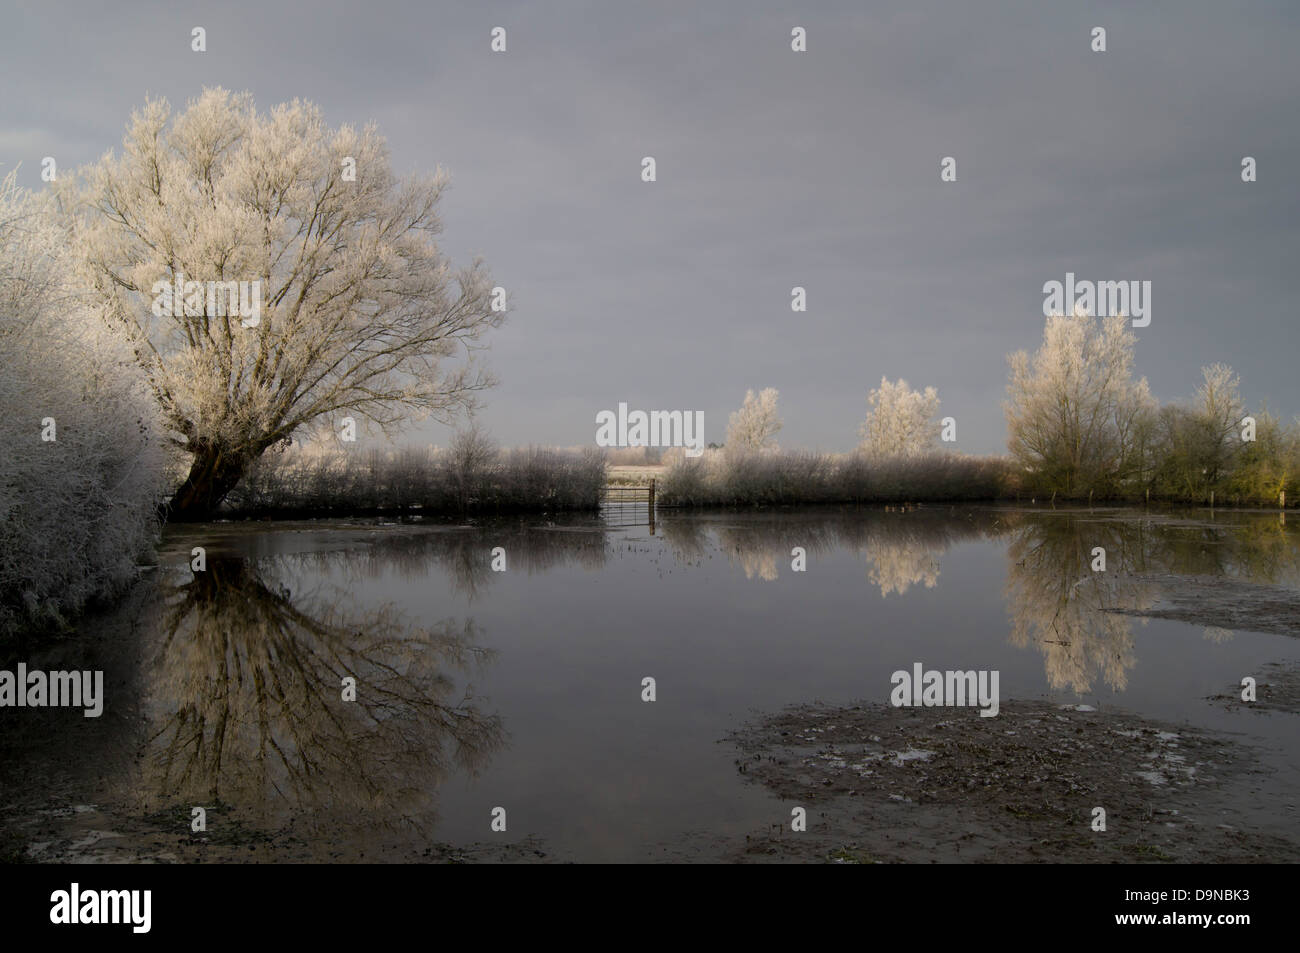 UK, England, Gloucestershire, River Thames at Waterhay, winter flood - Stock Image